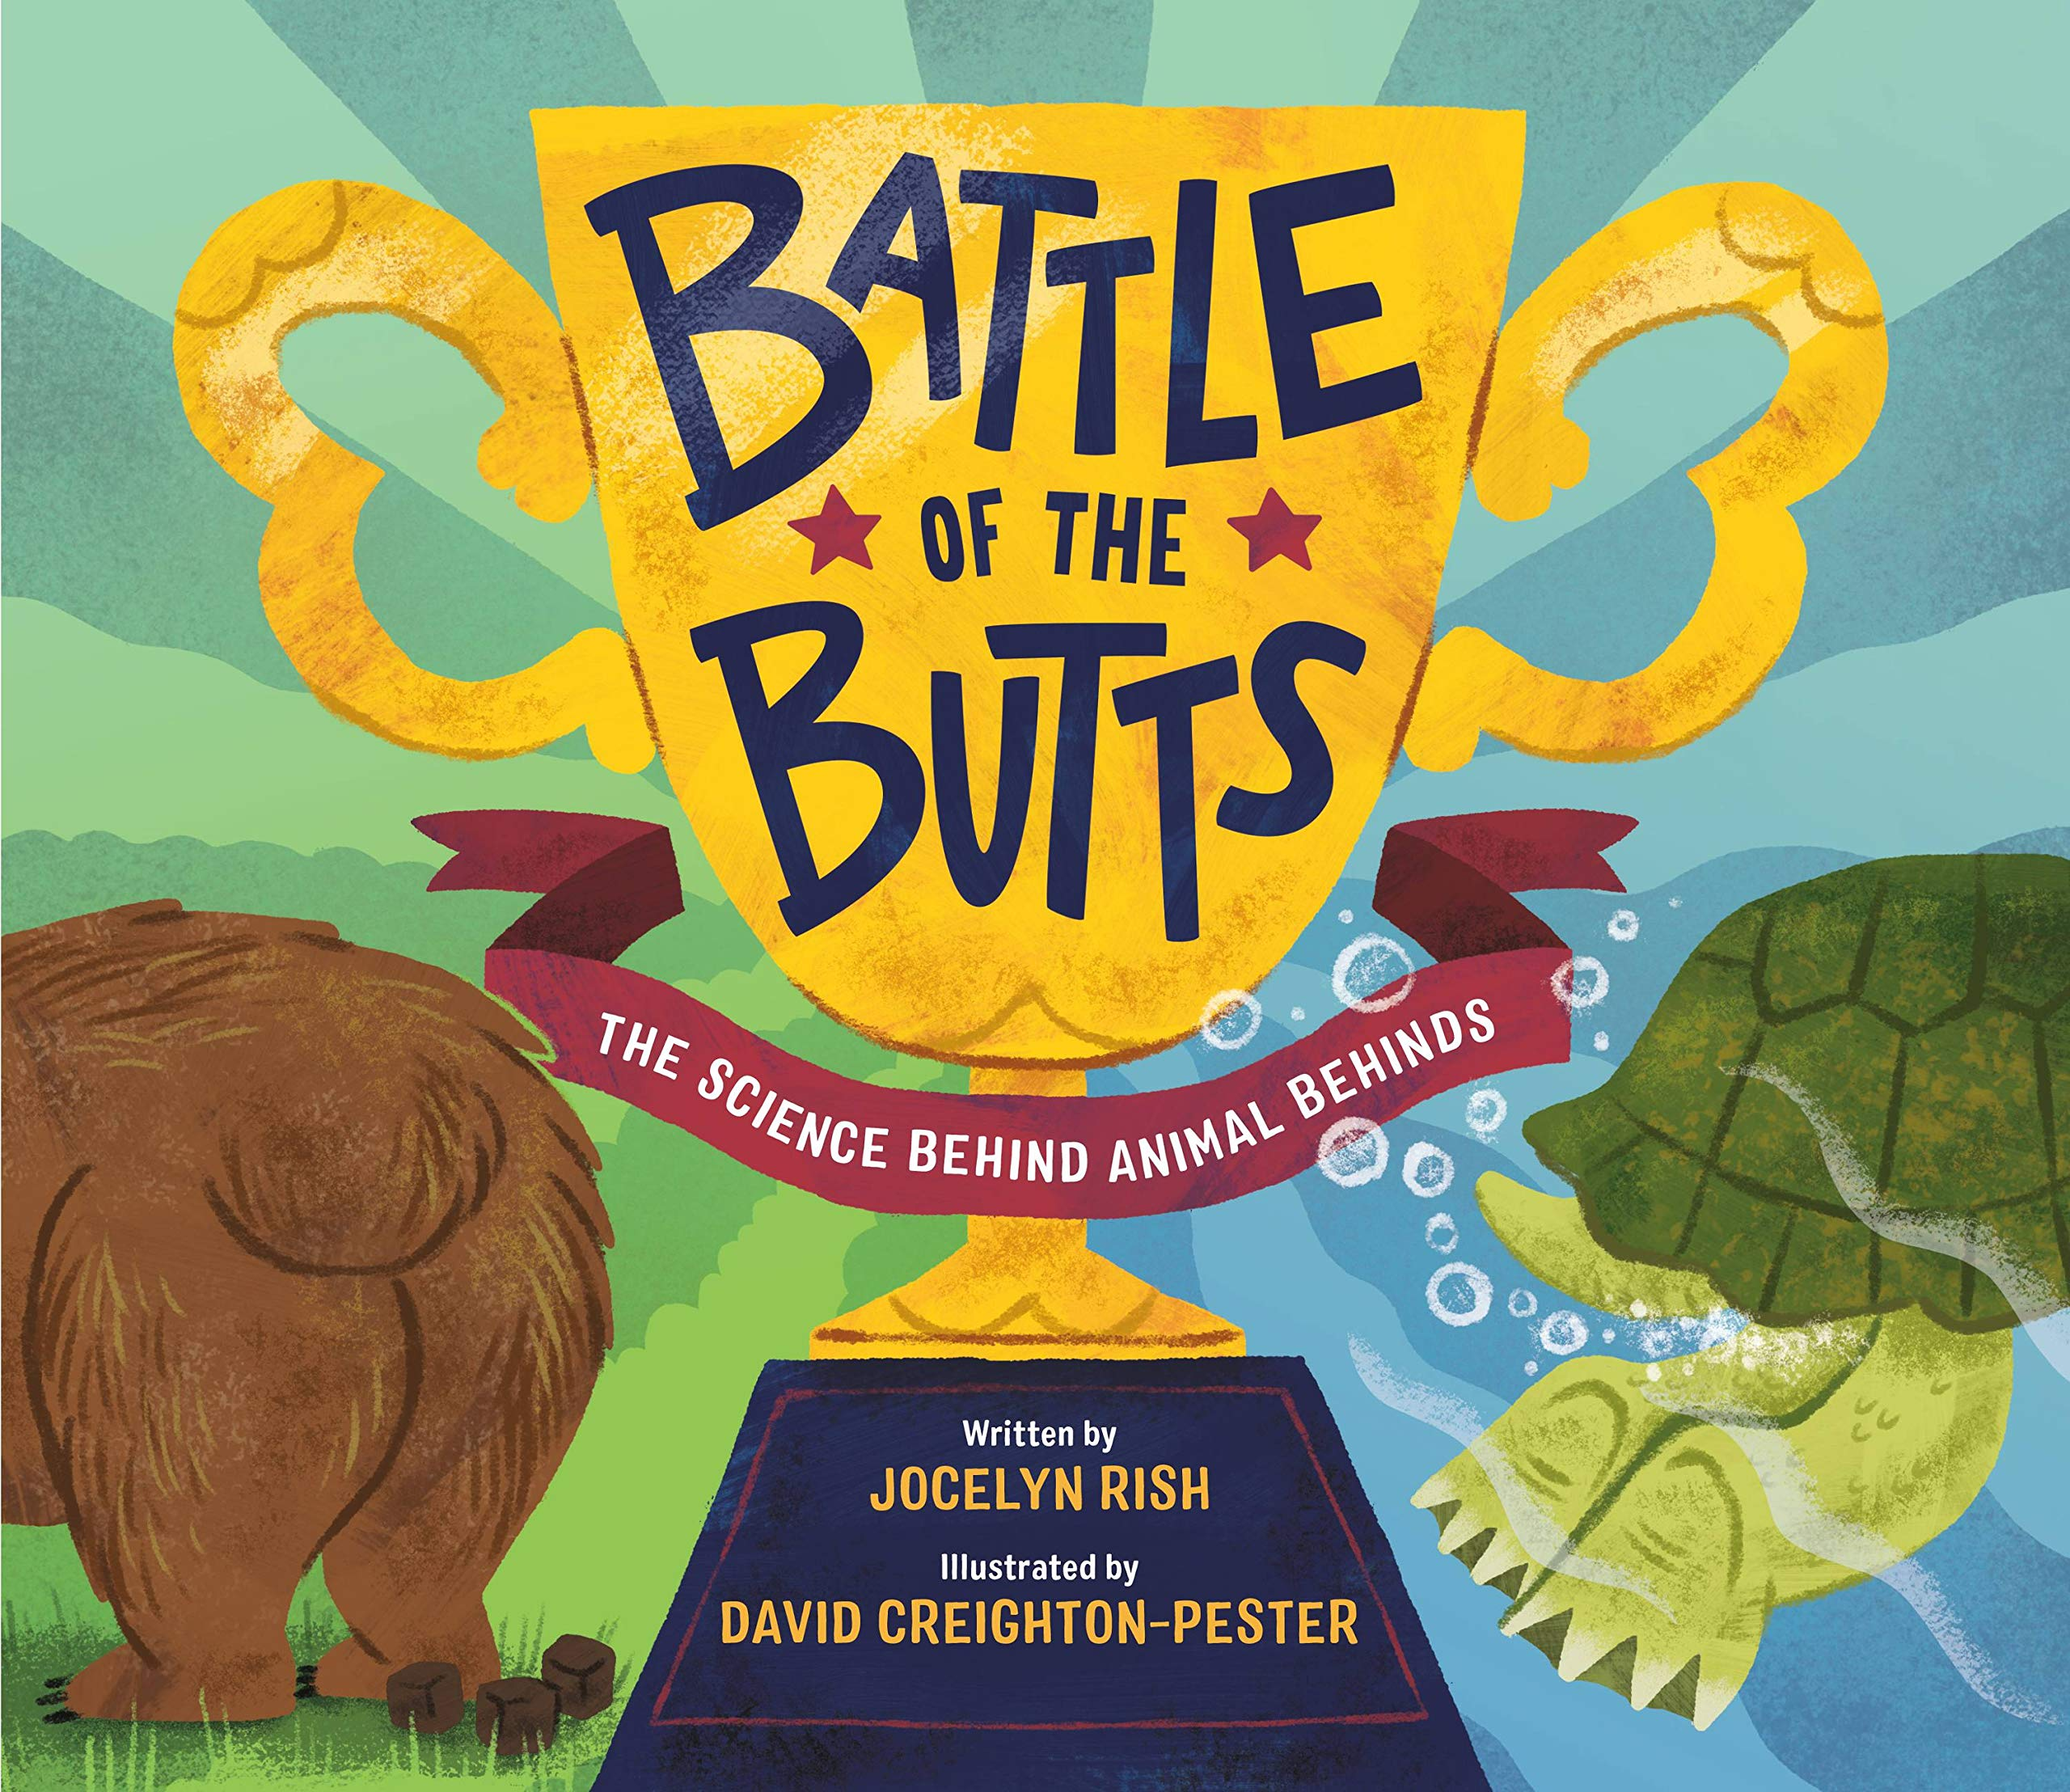 Battle of the Butts cover